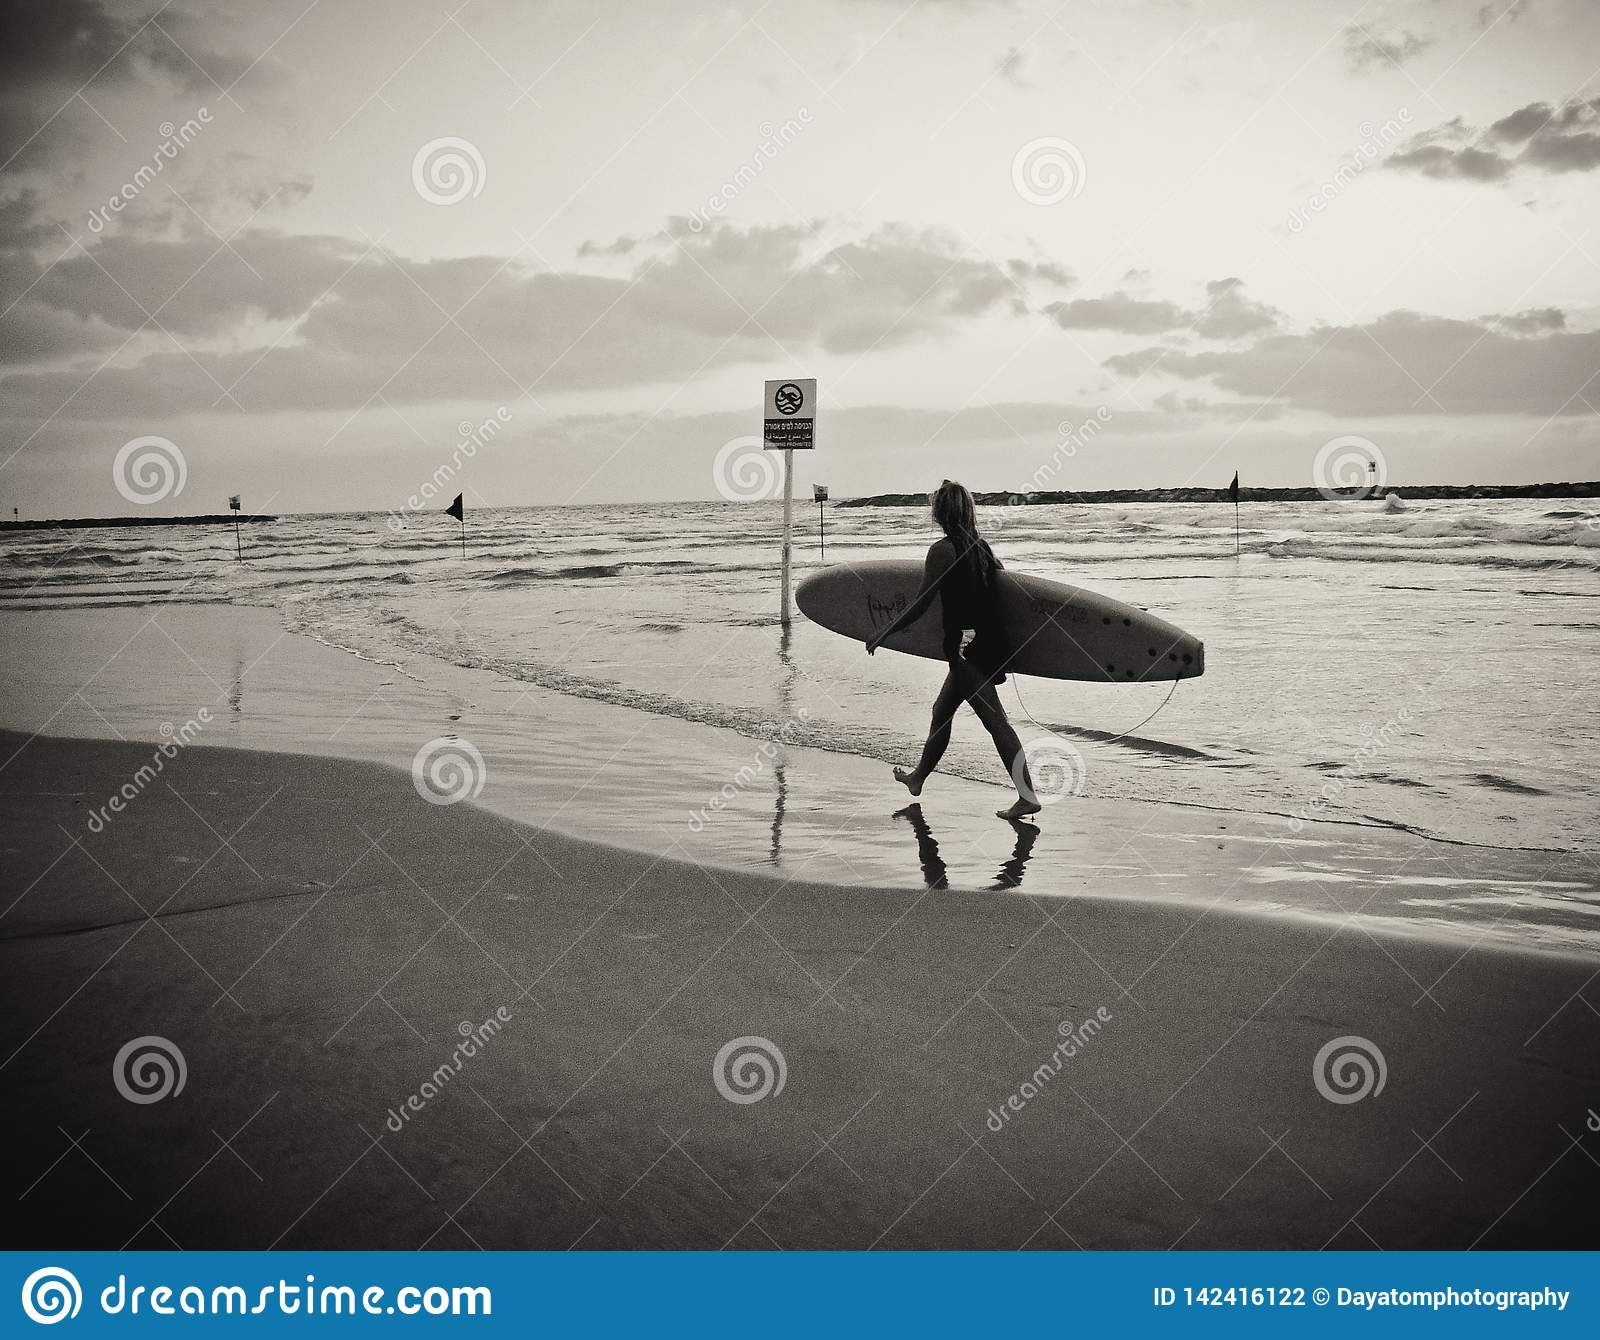 Young female surfer with board walking on the beach, reflected on water, under a cloudy sky